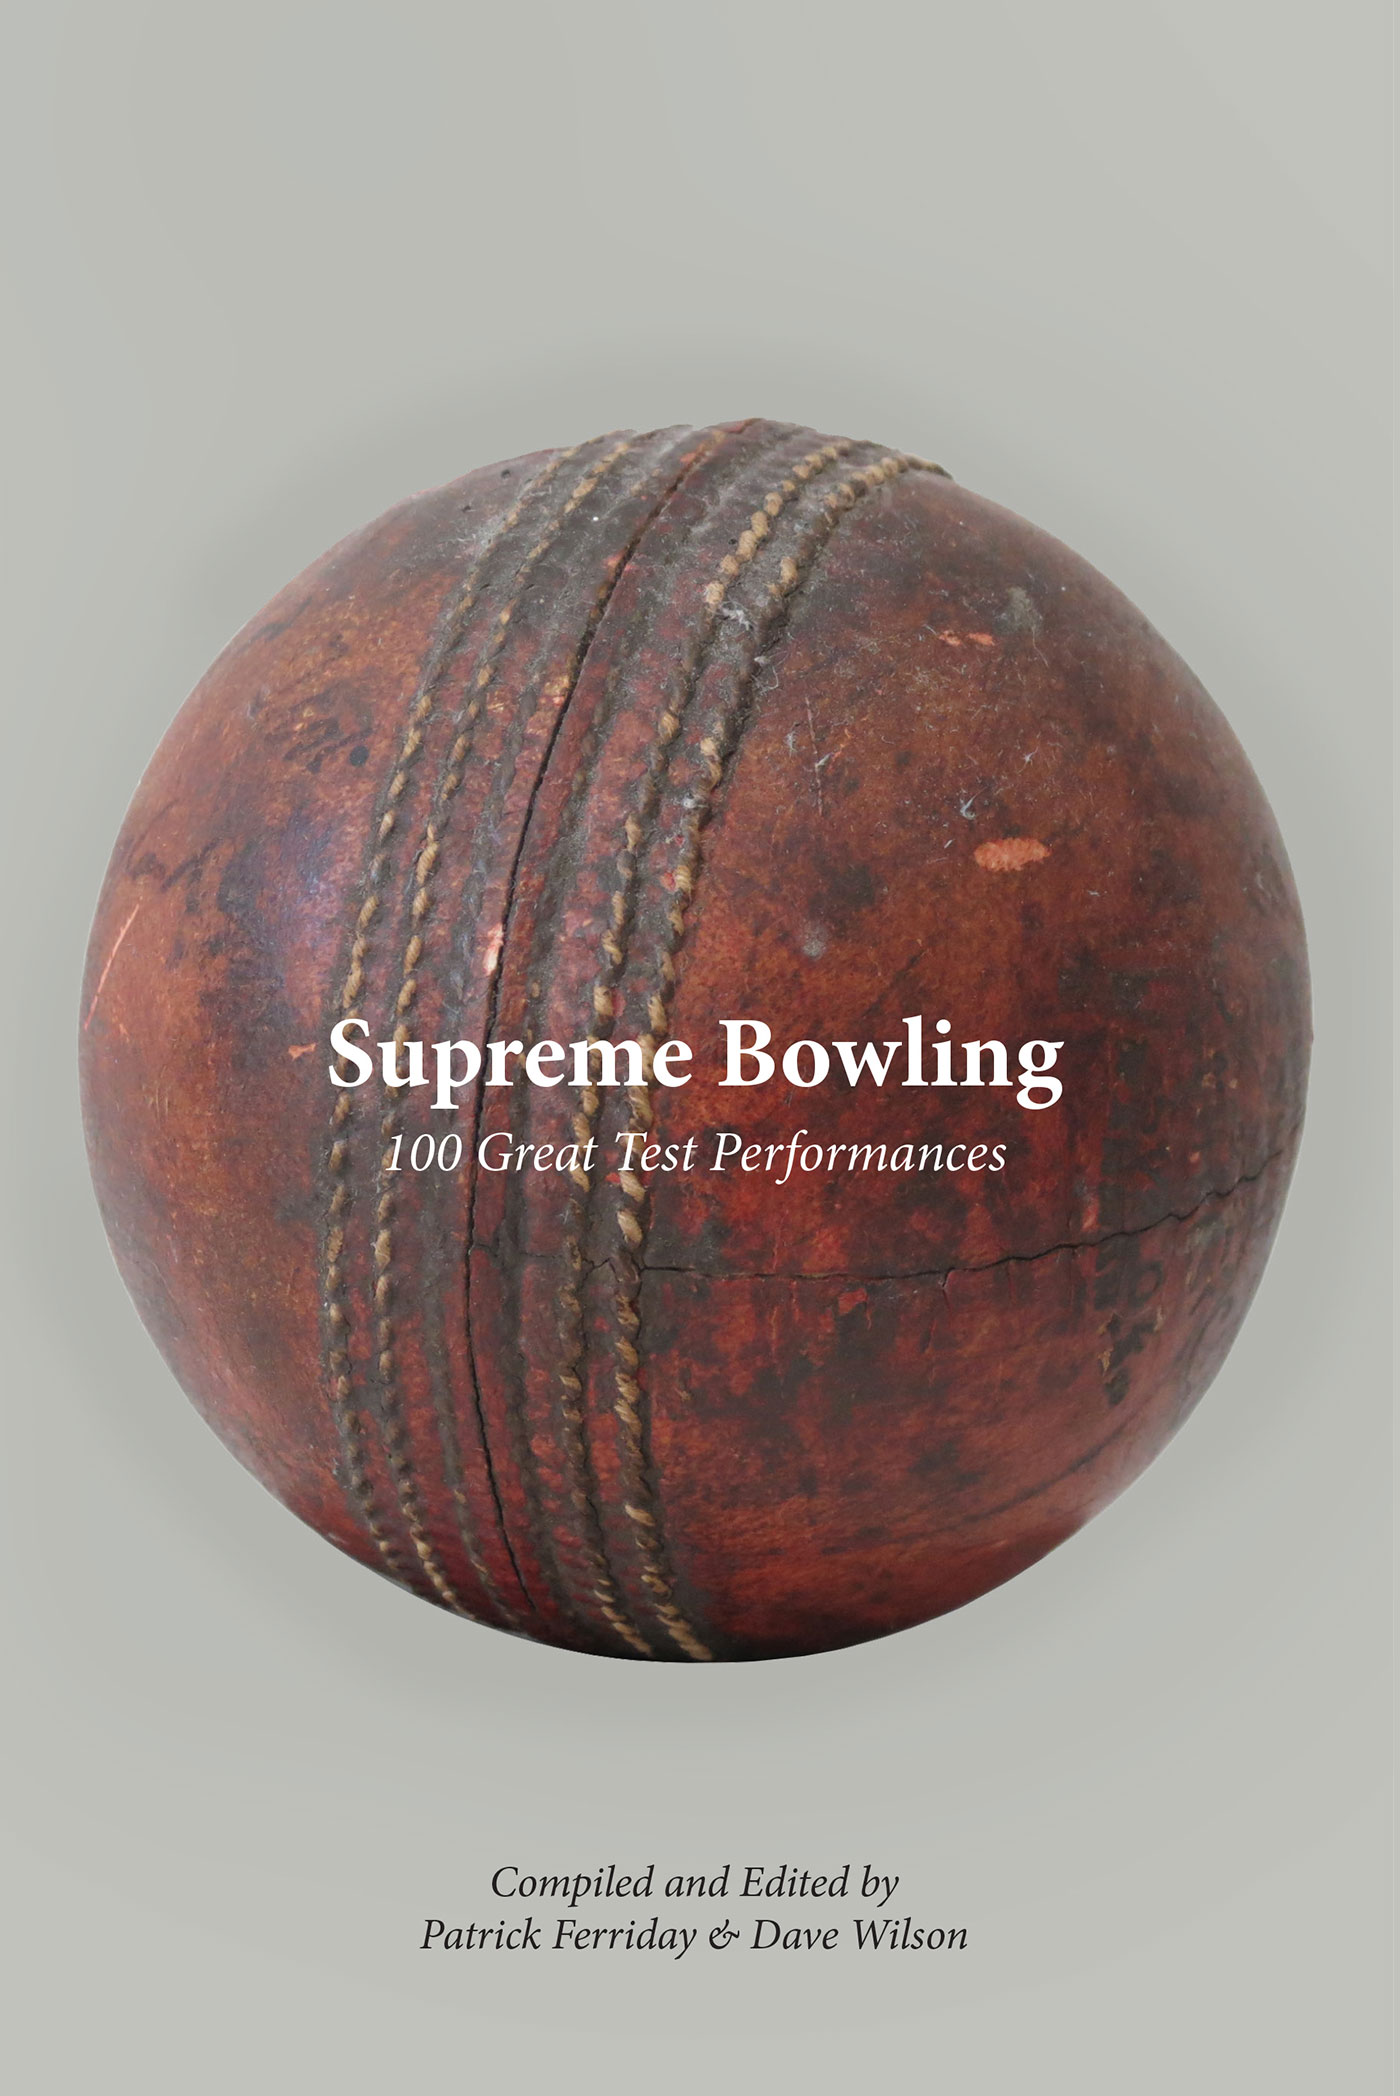 alan gardner reviews supreme bowling by patrick ferriday and dave von krumm publishing